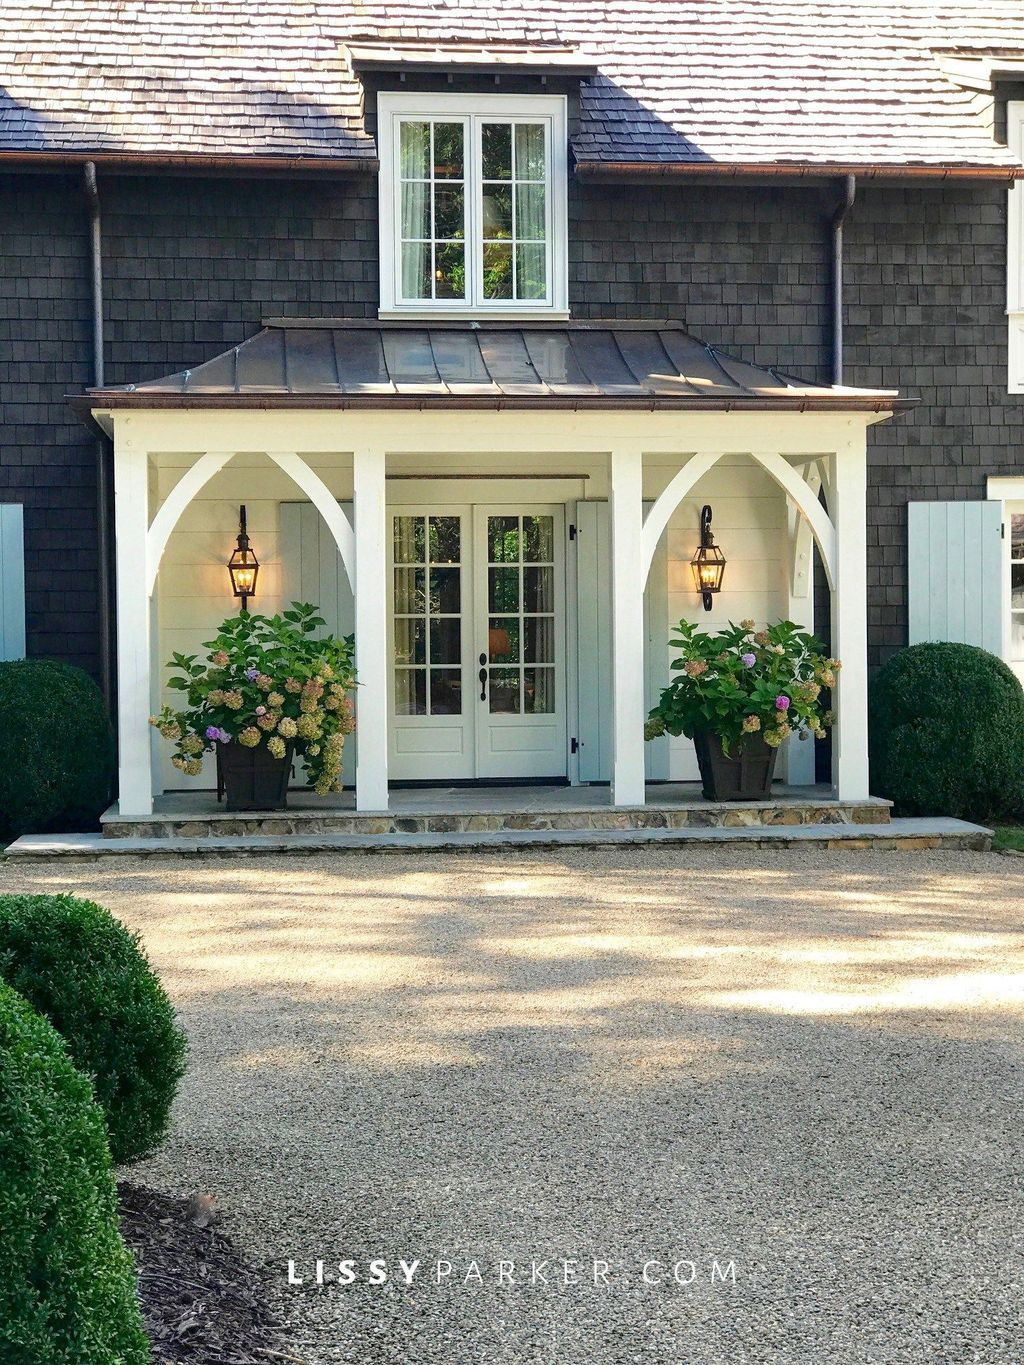 40 Incredible farmhouse front porch design ideas - Page 38 of 44 - Fathinah Decor #frontporchideascurbappeal